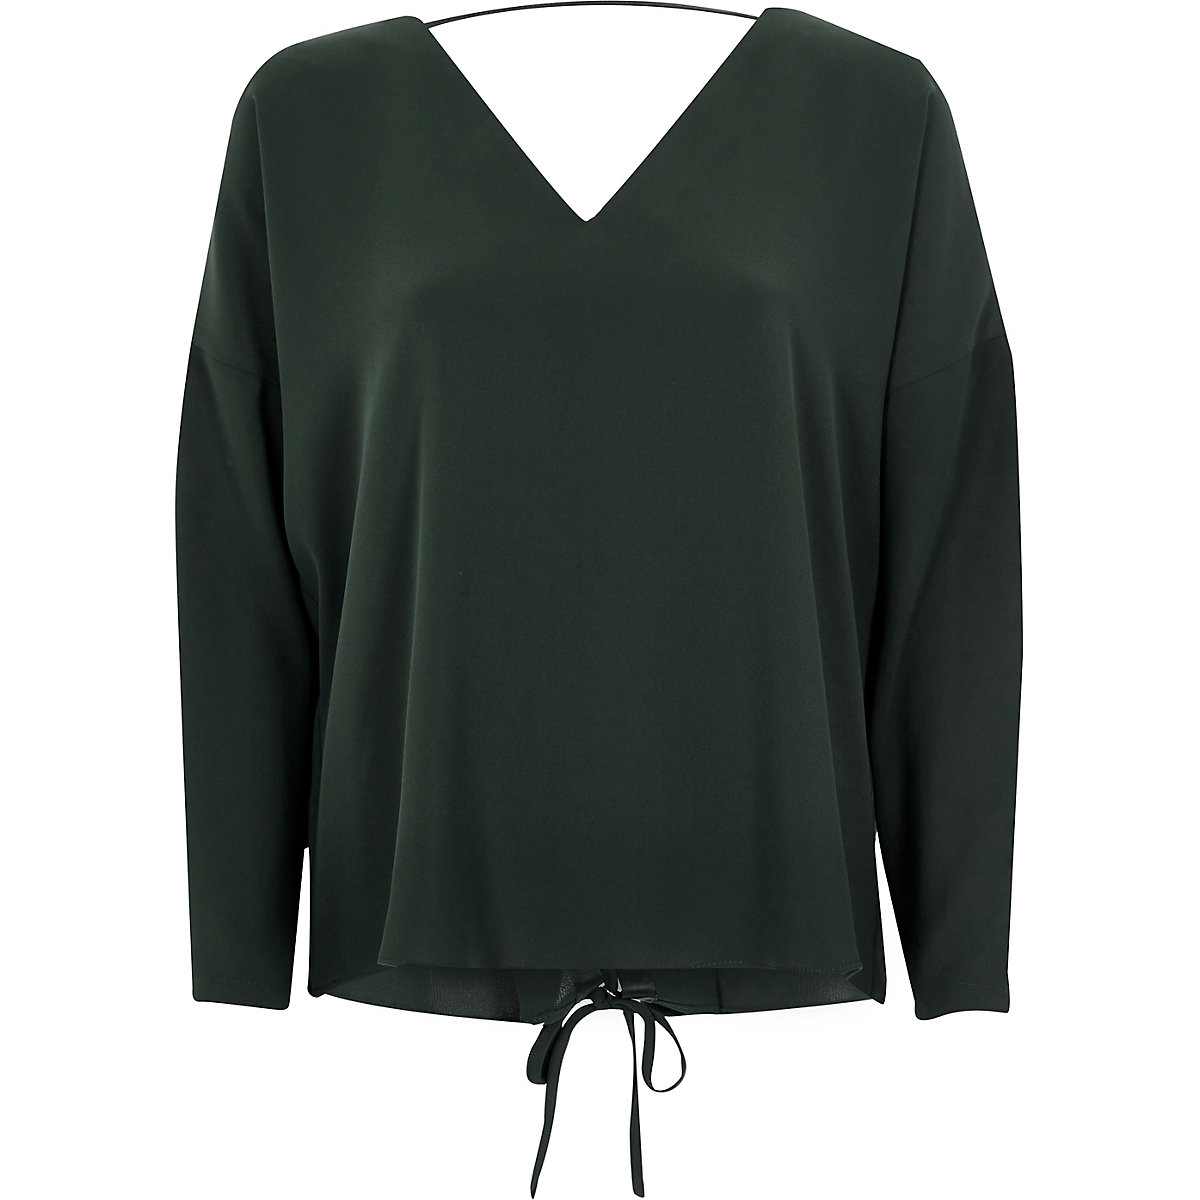 Dark green long sleeve lace-up back top